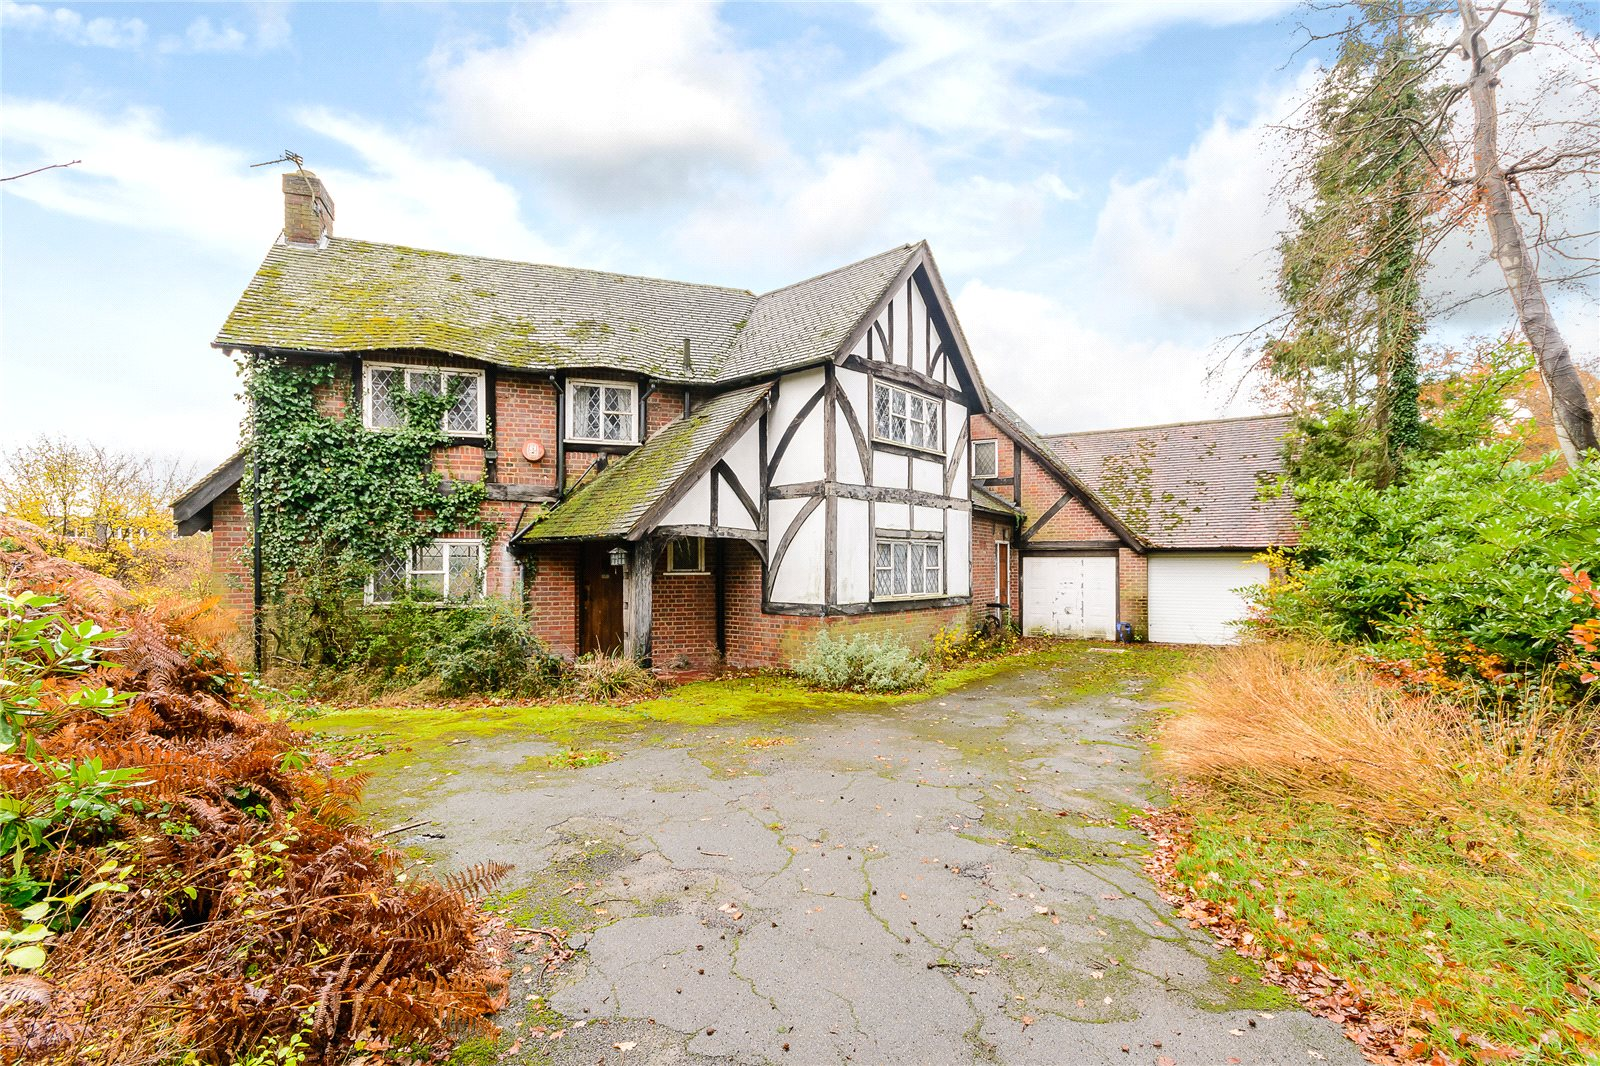 Частный дом для того Продажа на Collinswood Road, Farnham Common, Buckinghamshire, SL2 Farnham Common, Англия